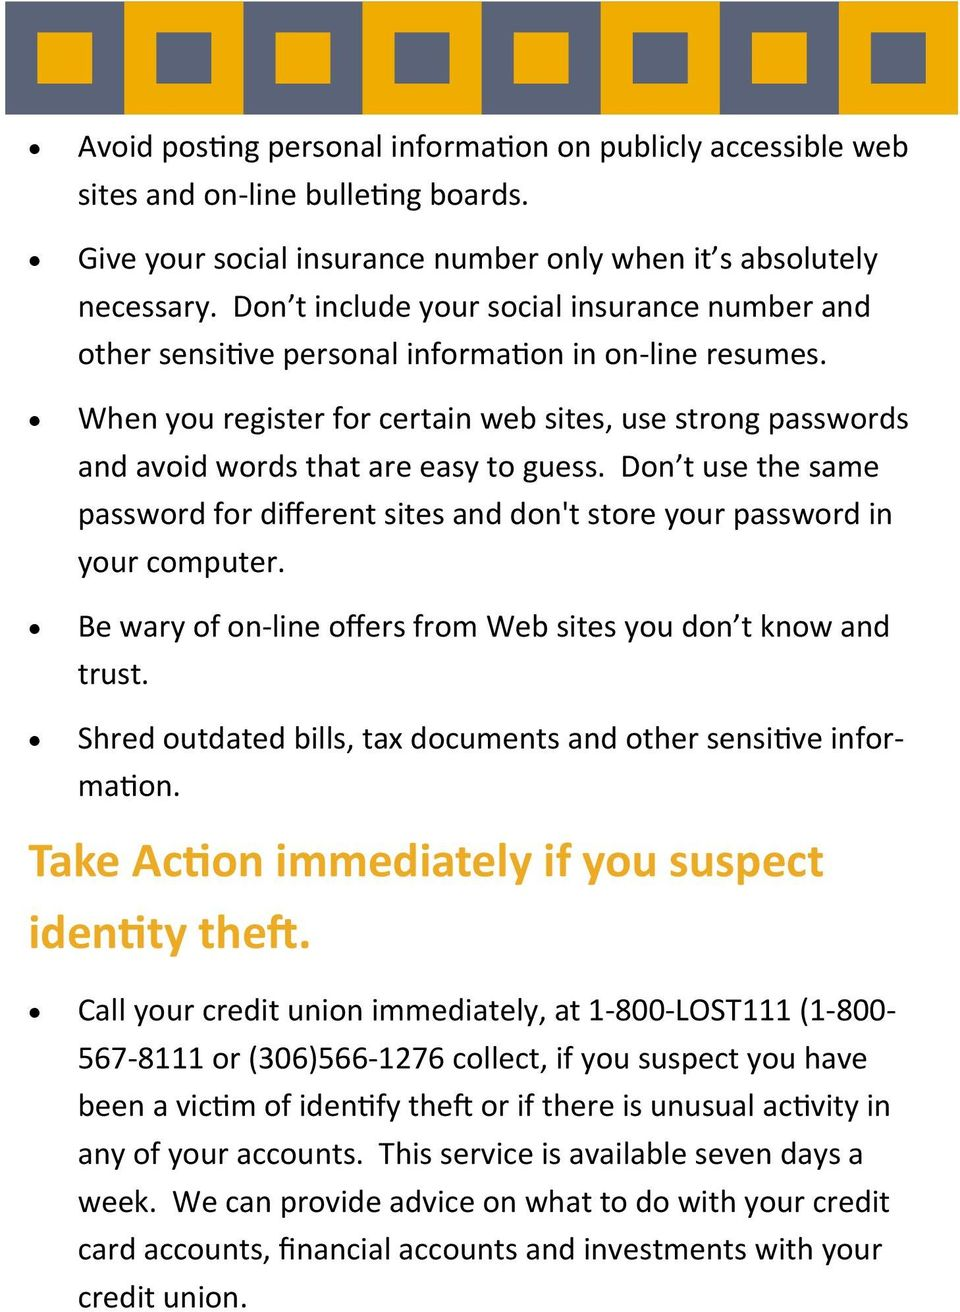 When you register for certain web sites, use strong passwords and avoid words that are easy to guess. Don t use the same password for different sites and don't store your password in your computer.